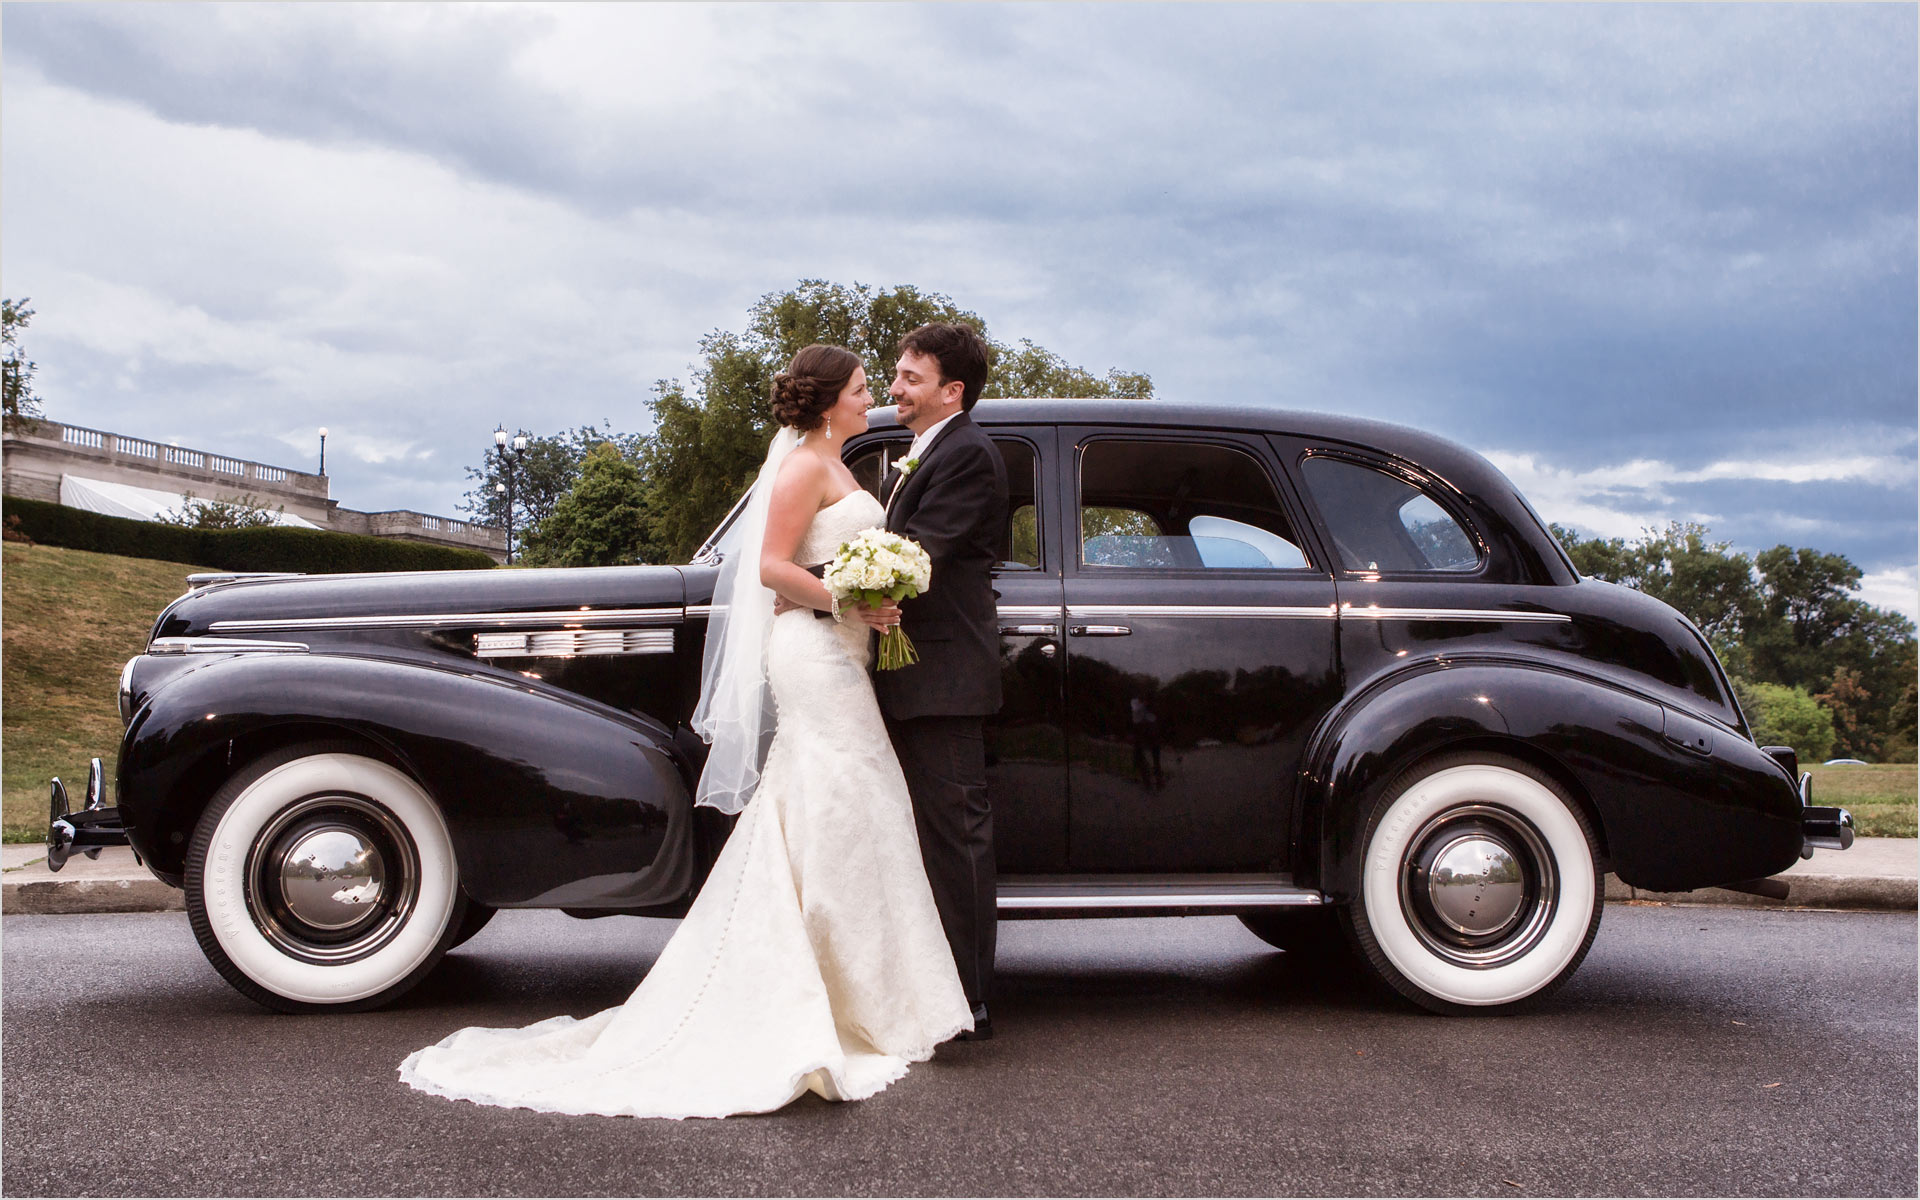 Ault Park Wedding Limo Couple